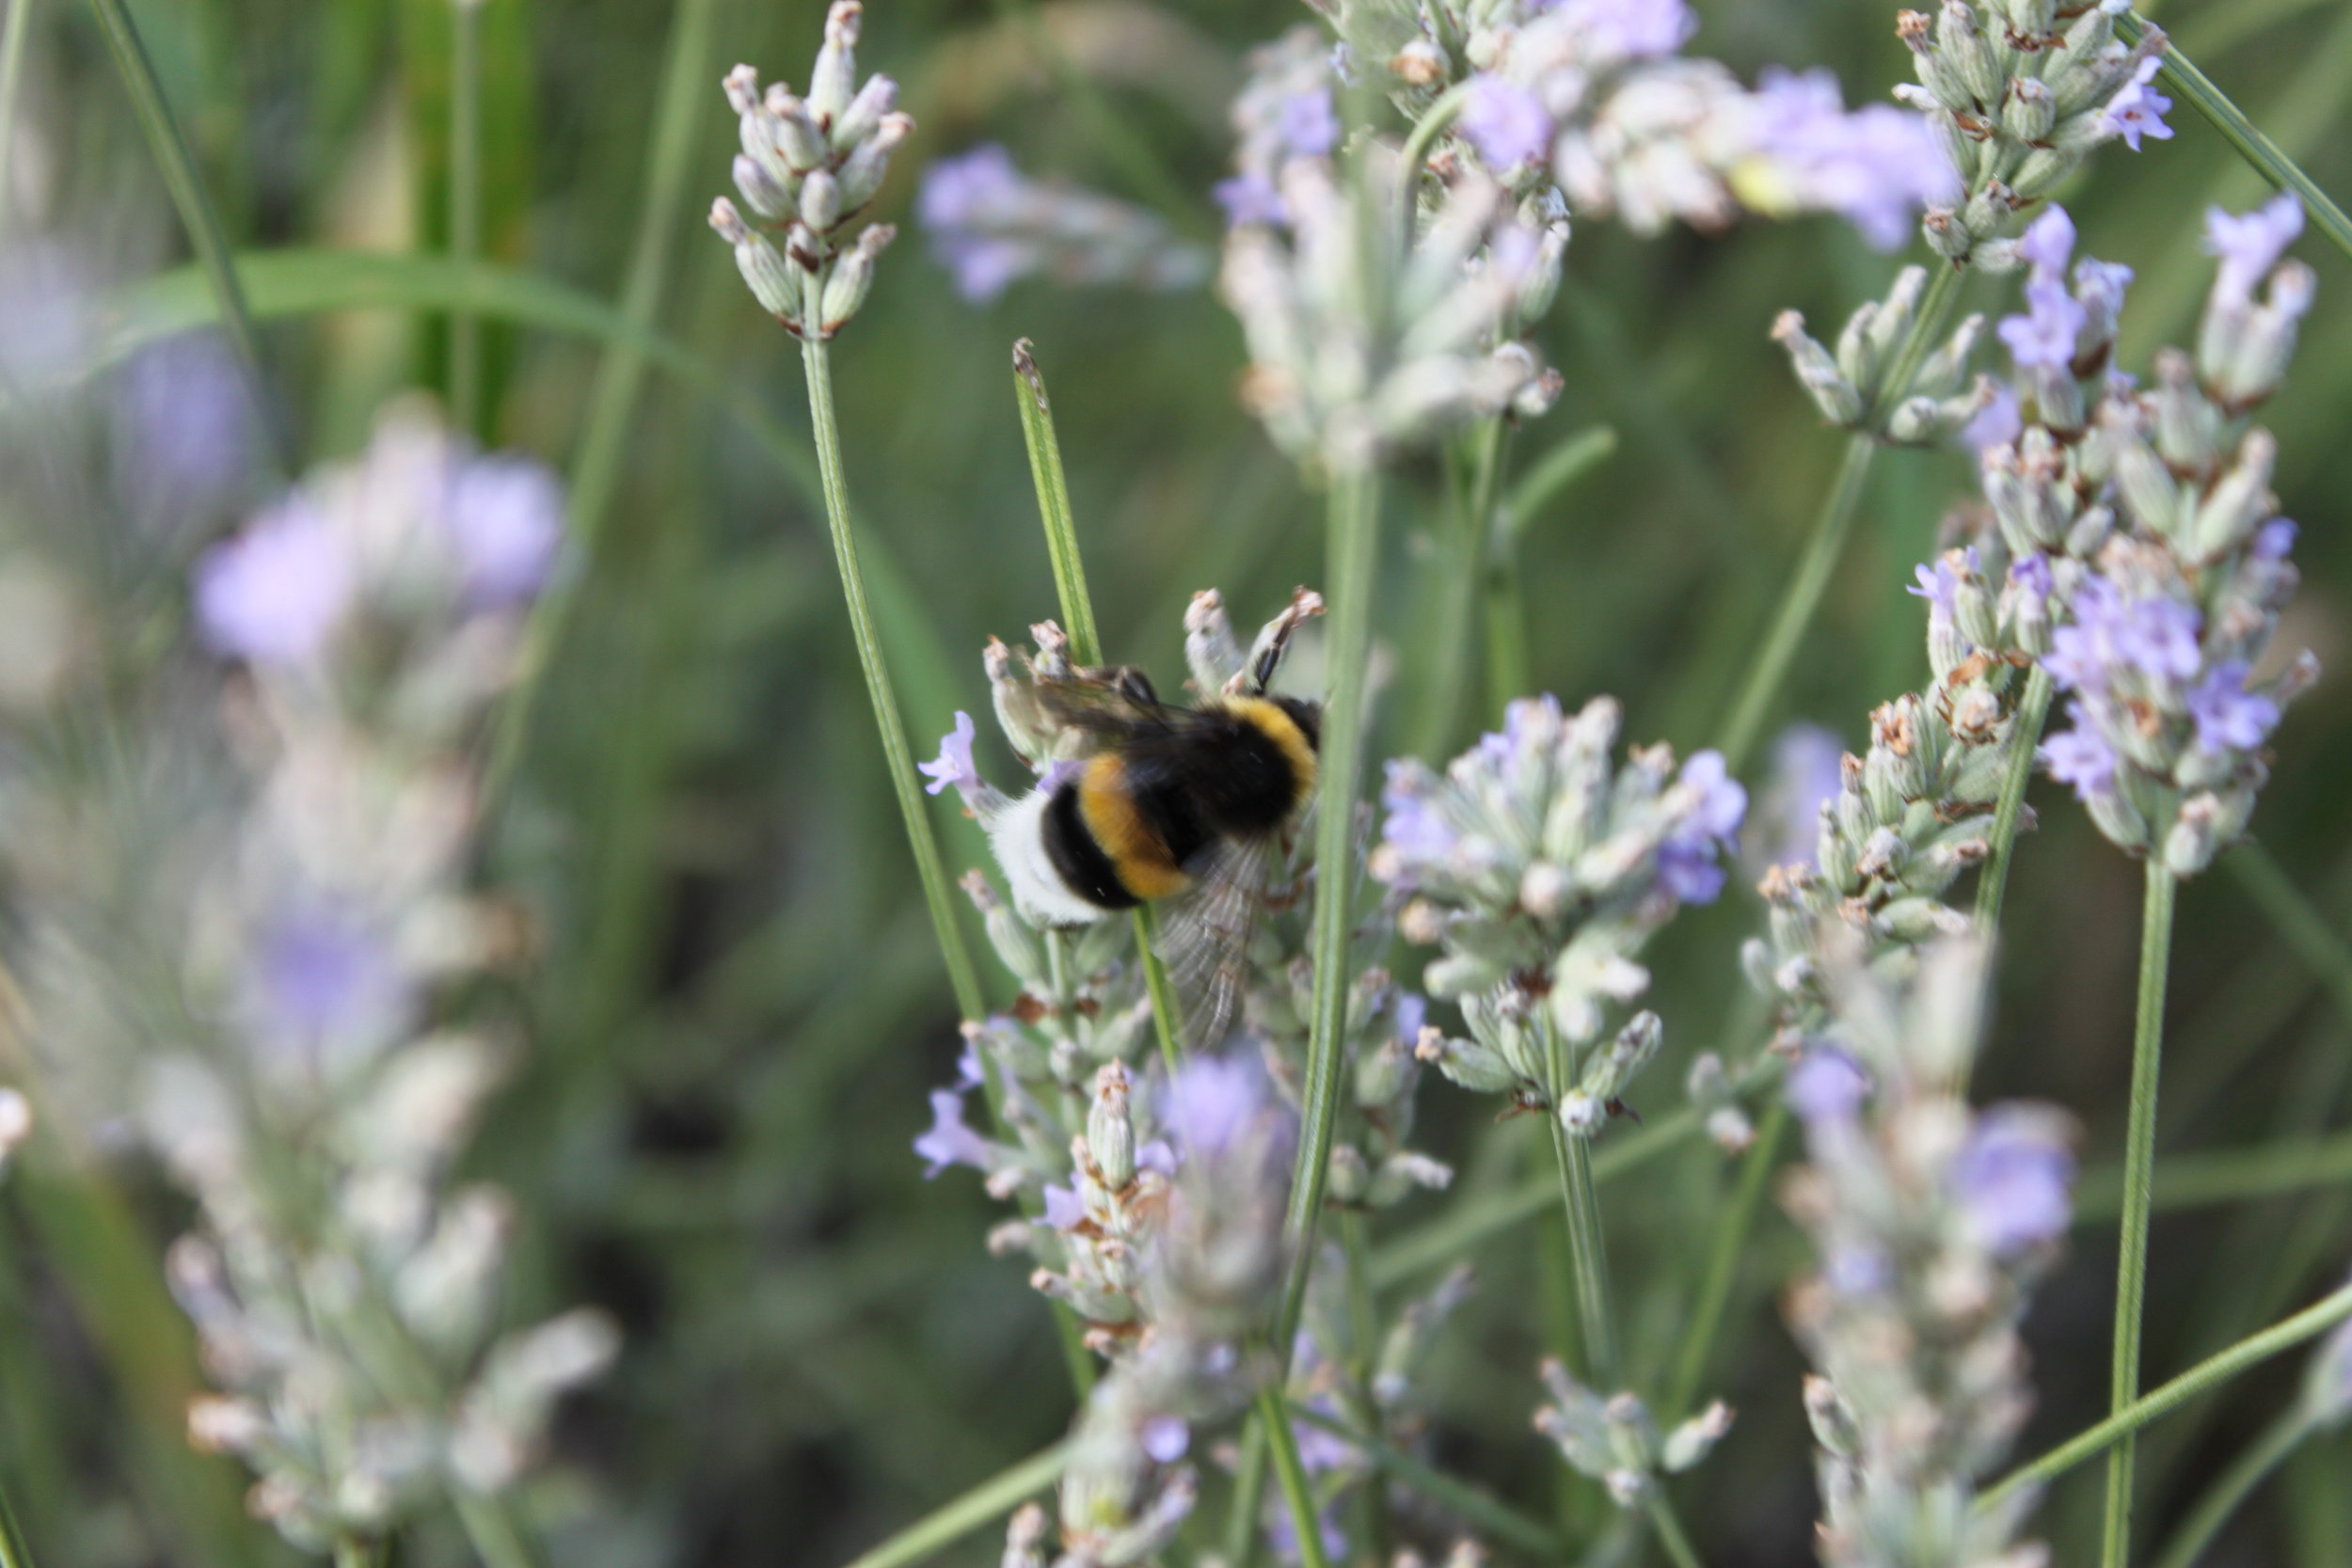 Bumblebee in France. Image courtesy of Nigel Rustin.